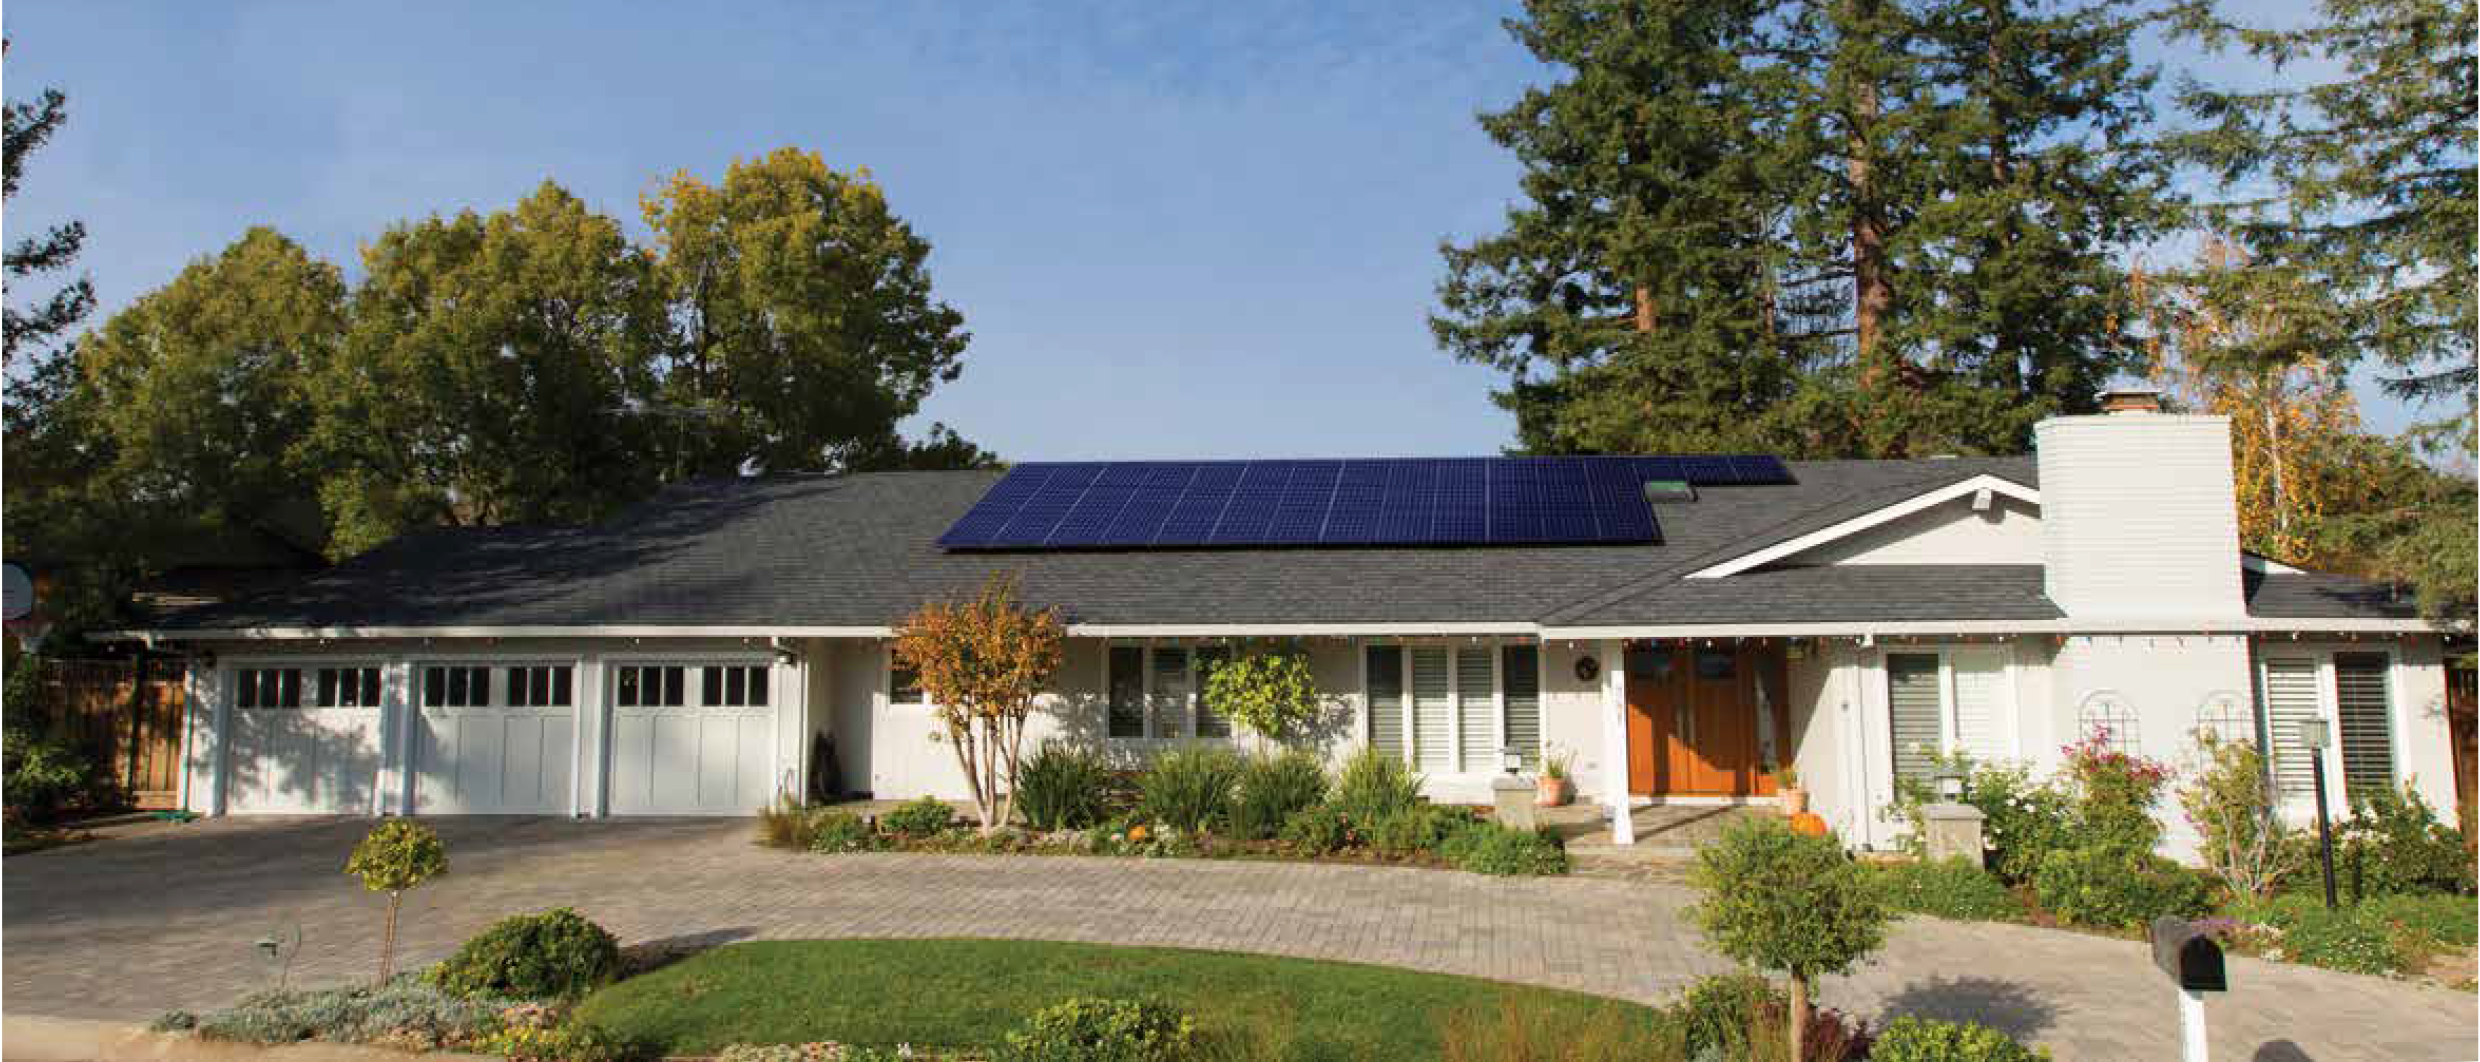 home-with-sunpower-solar-panels-on-it